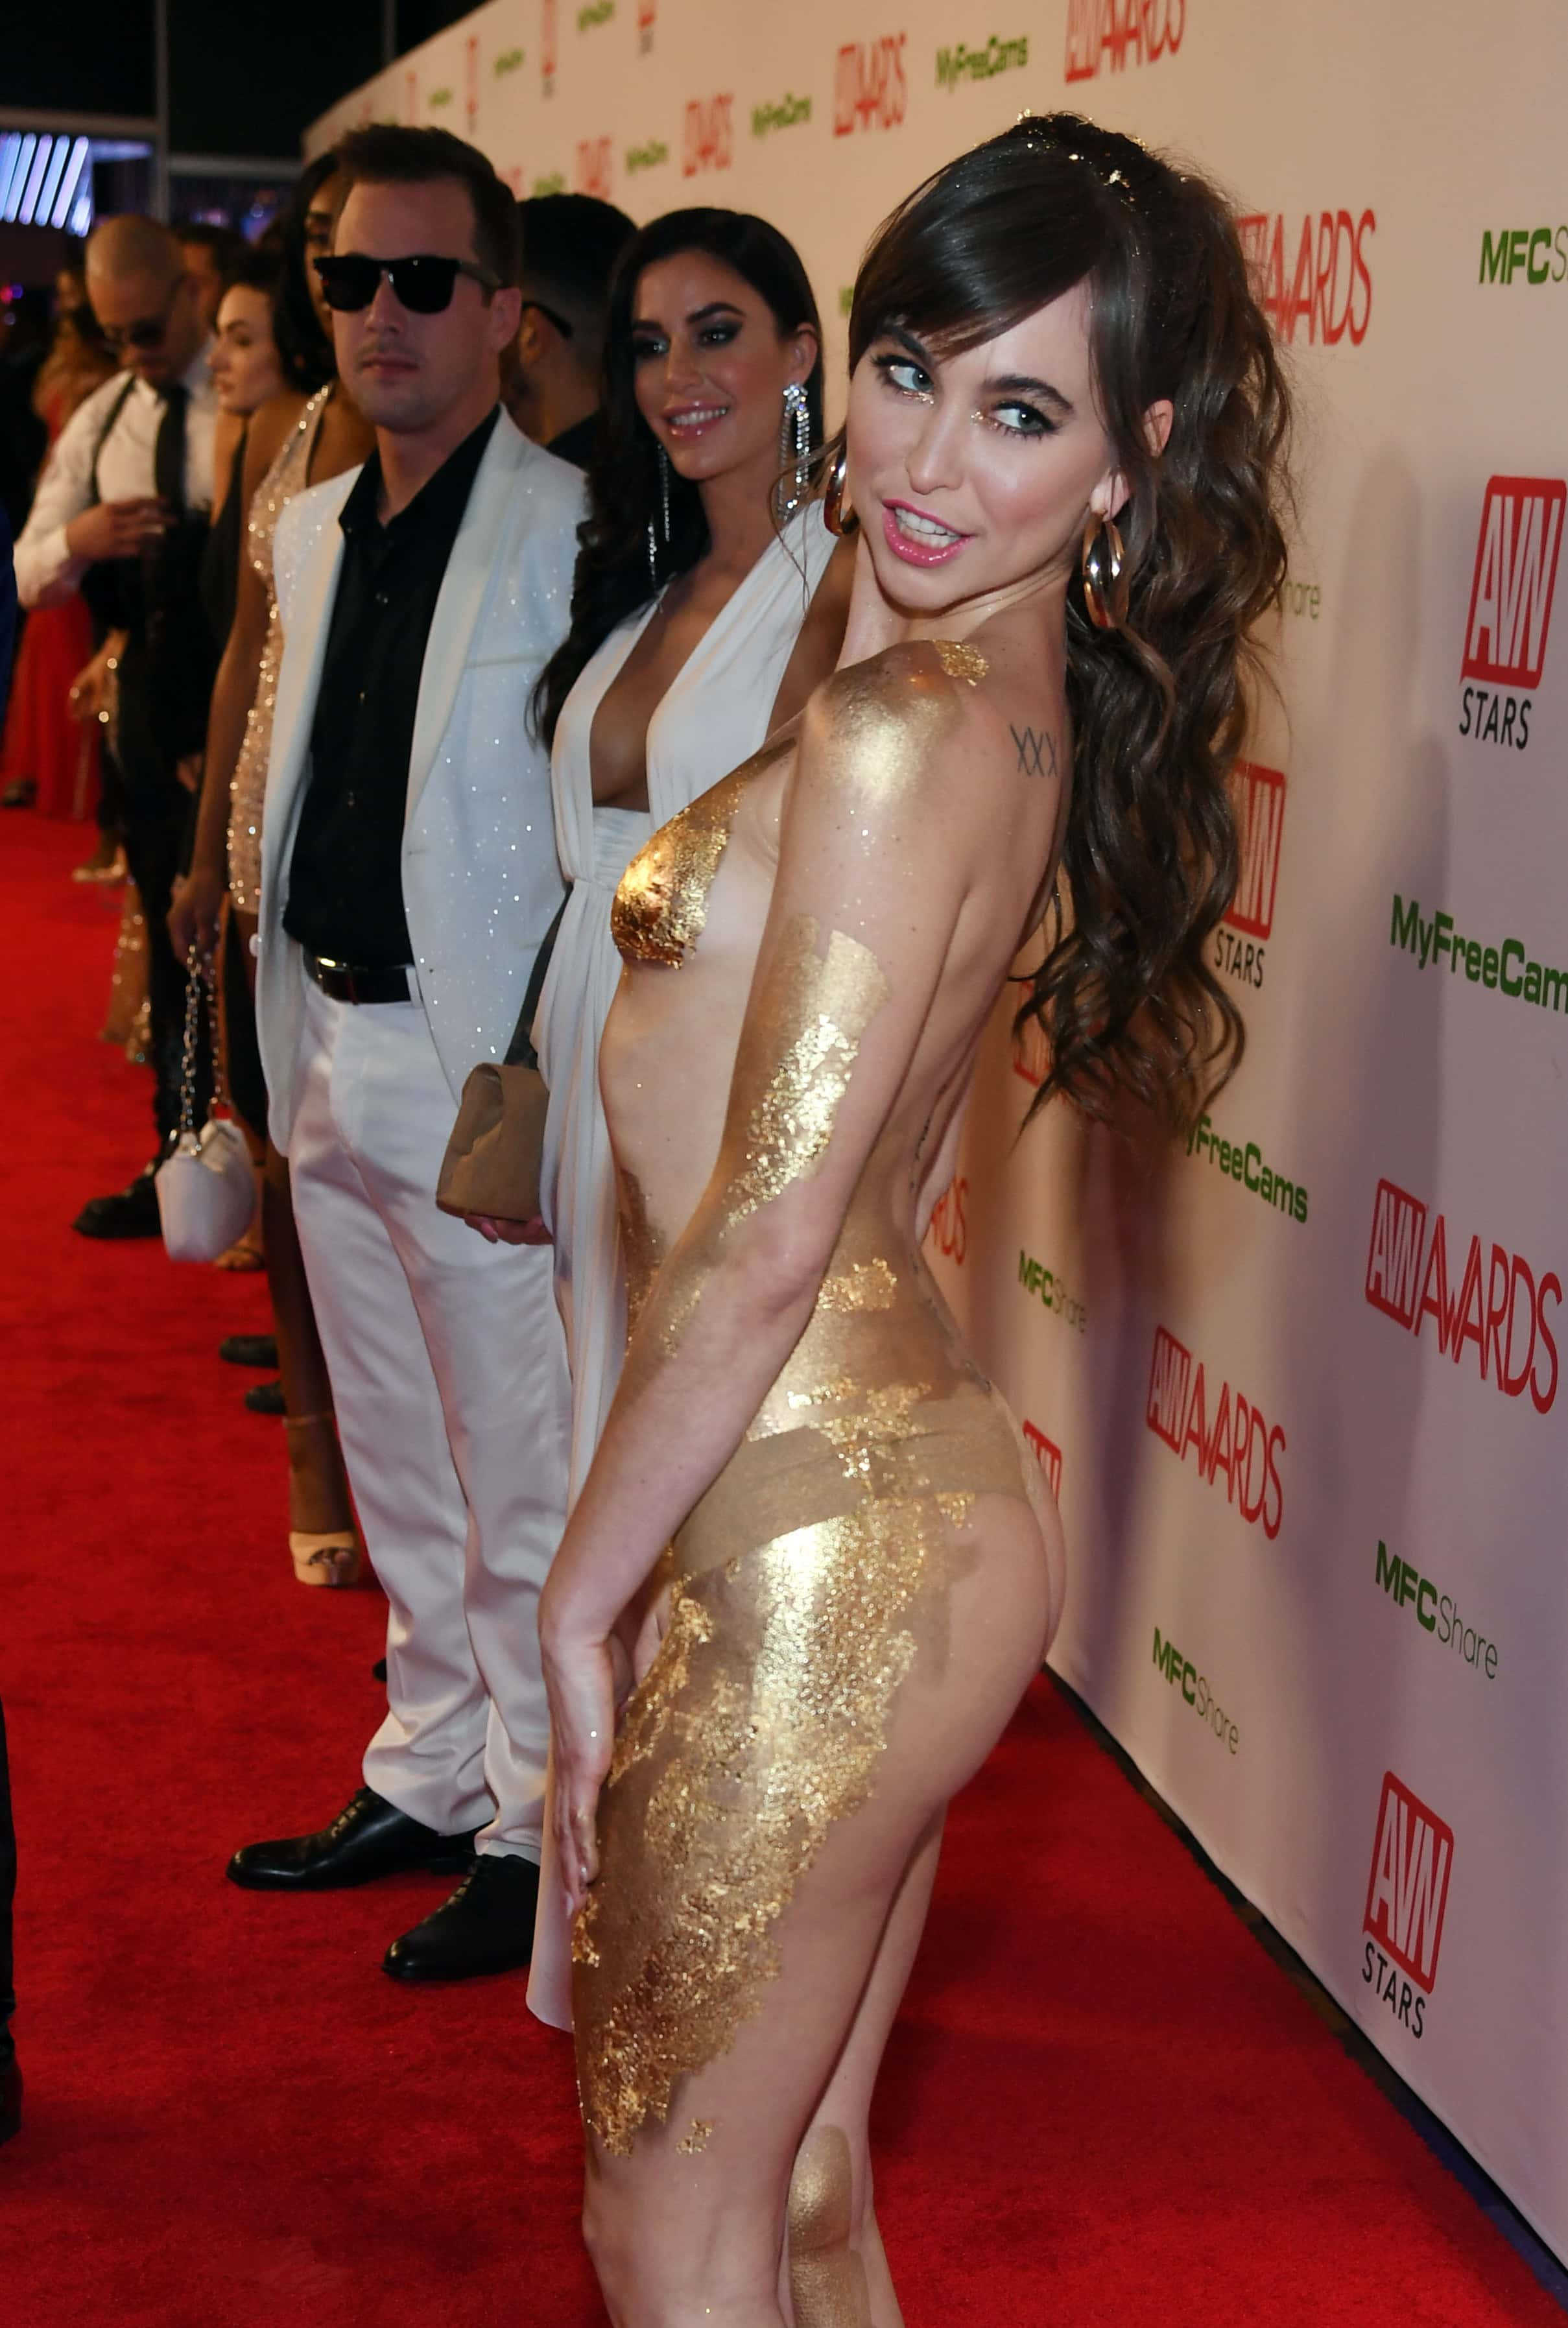 Actor Porno Filu porn star riley reid misses real love and 'intimacy', does